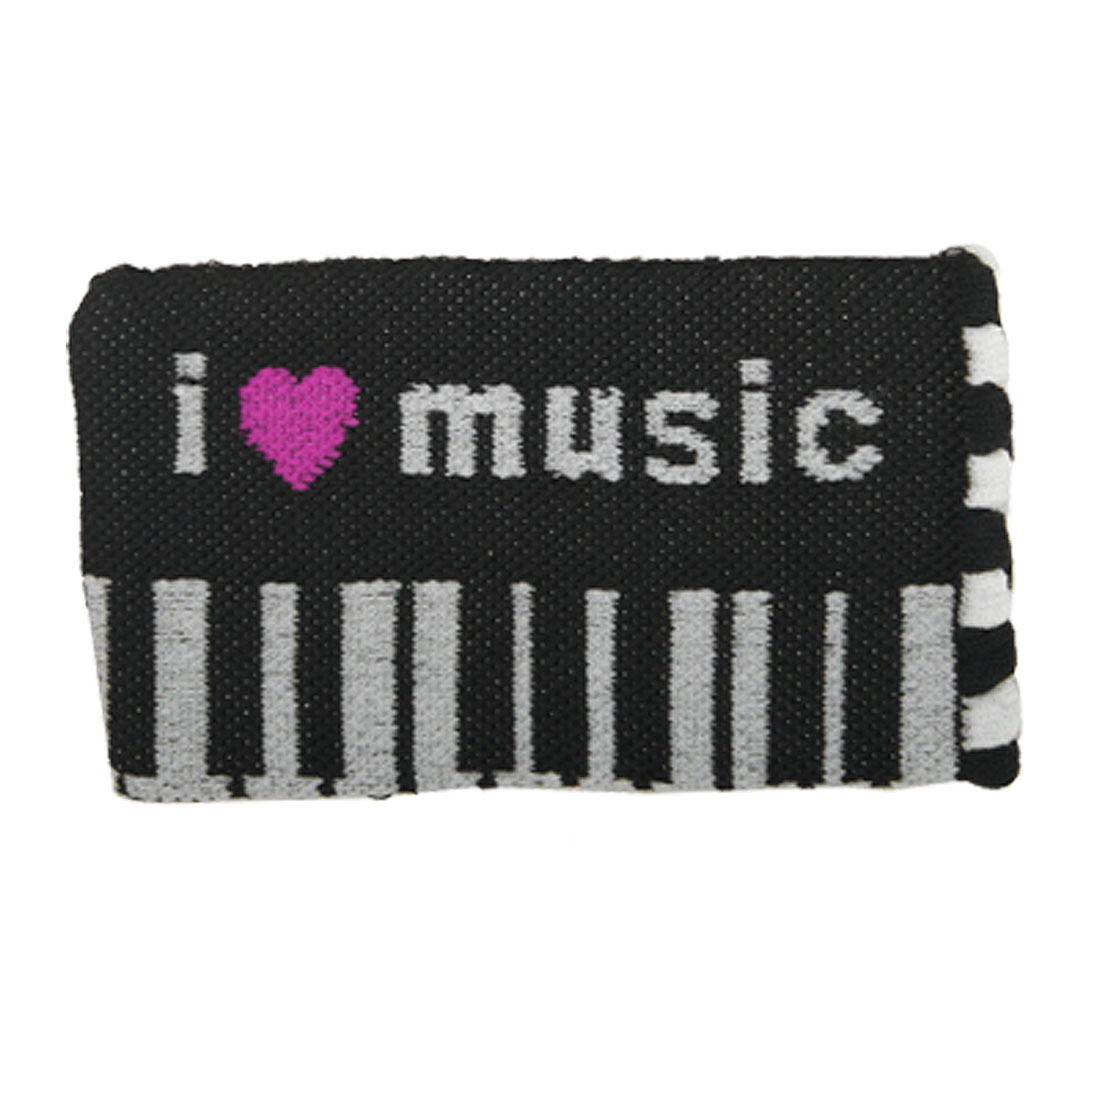 I Love Music Design Knitted Elastic Pouch Bag for Cell Phone Mp4